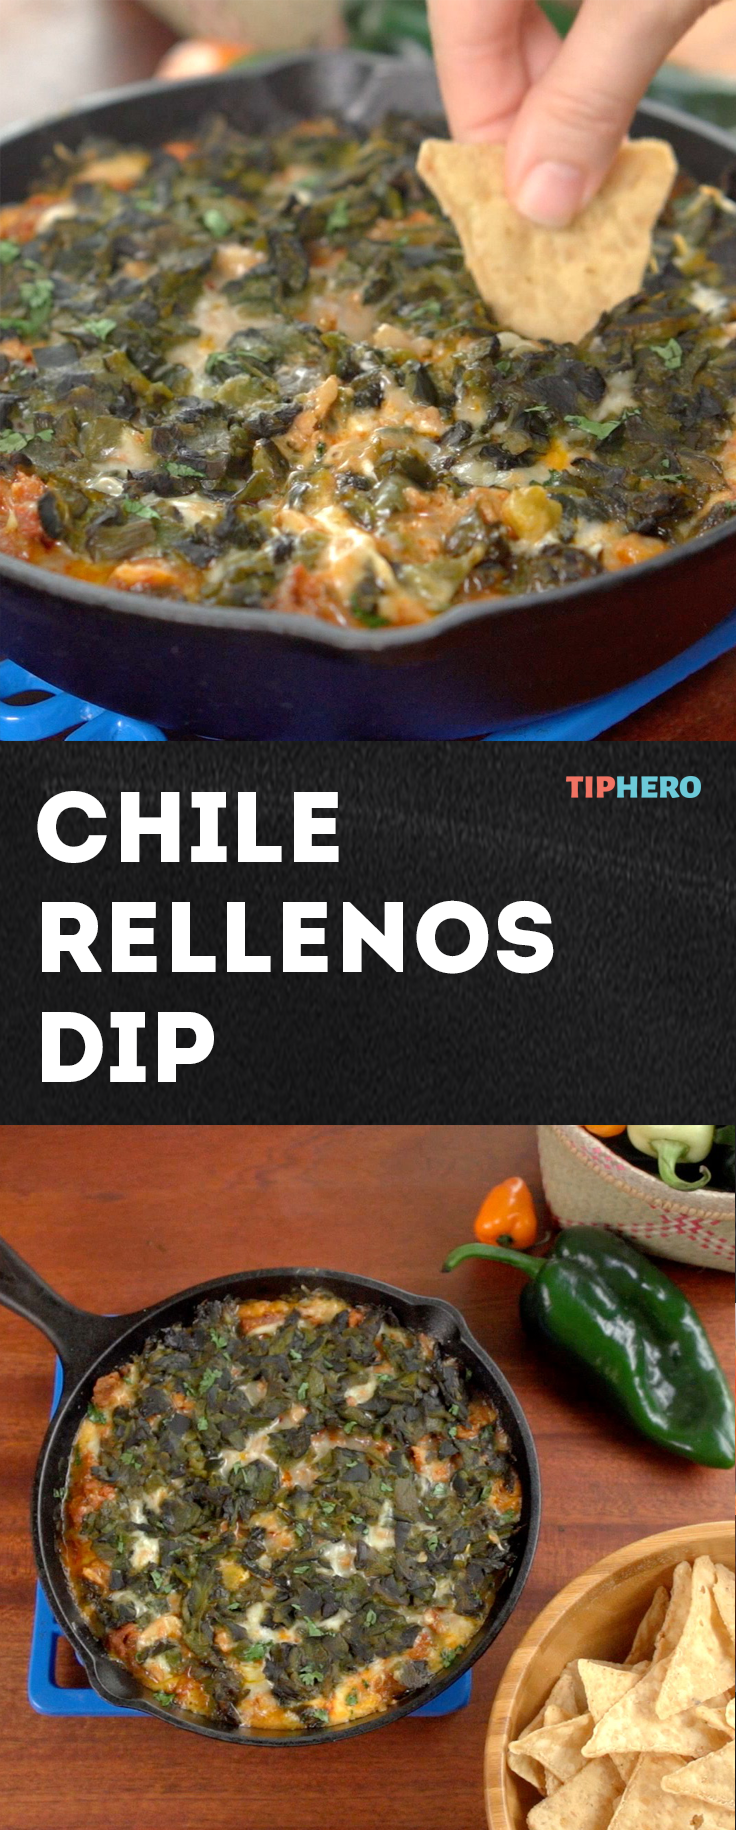 Chile Rellenos Dip Recipe This Spicy Skillet Dip Blends Poblano